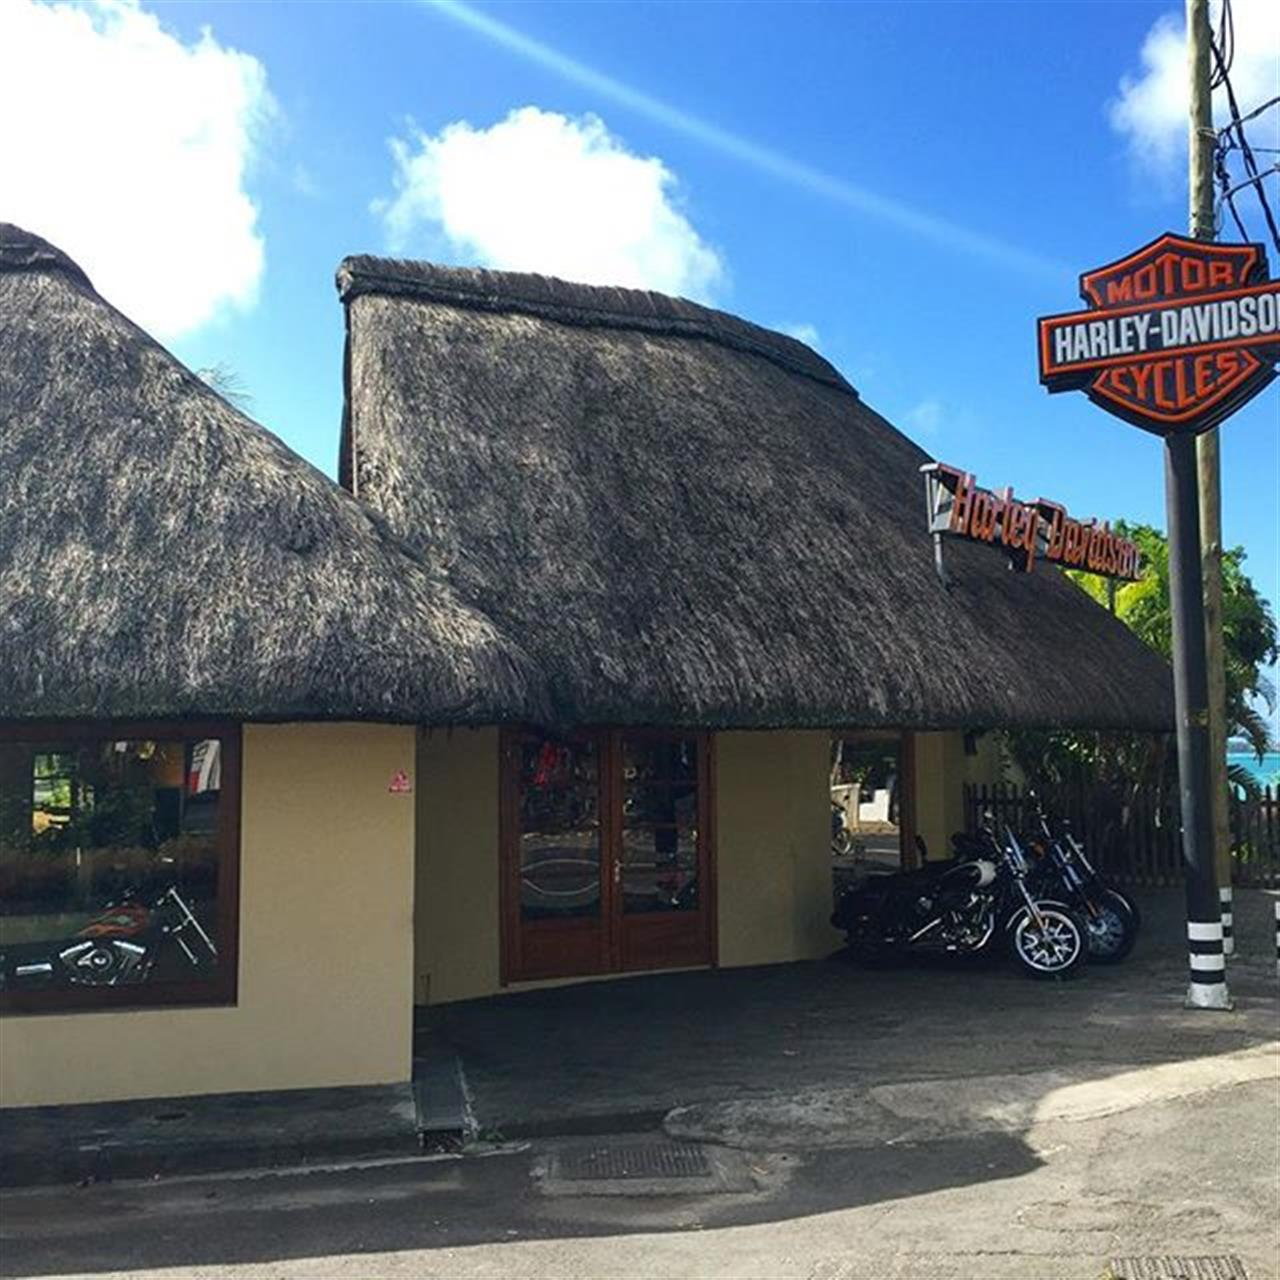 #harleydavidson in #mauritius for the bike lovers #leadingrelocal